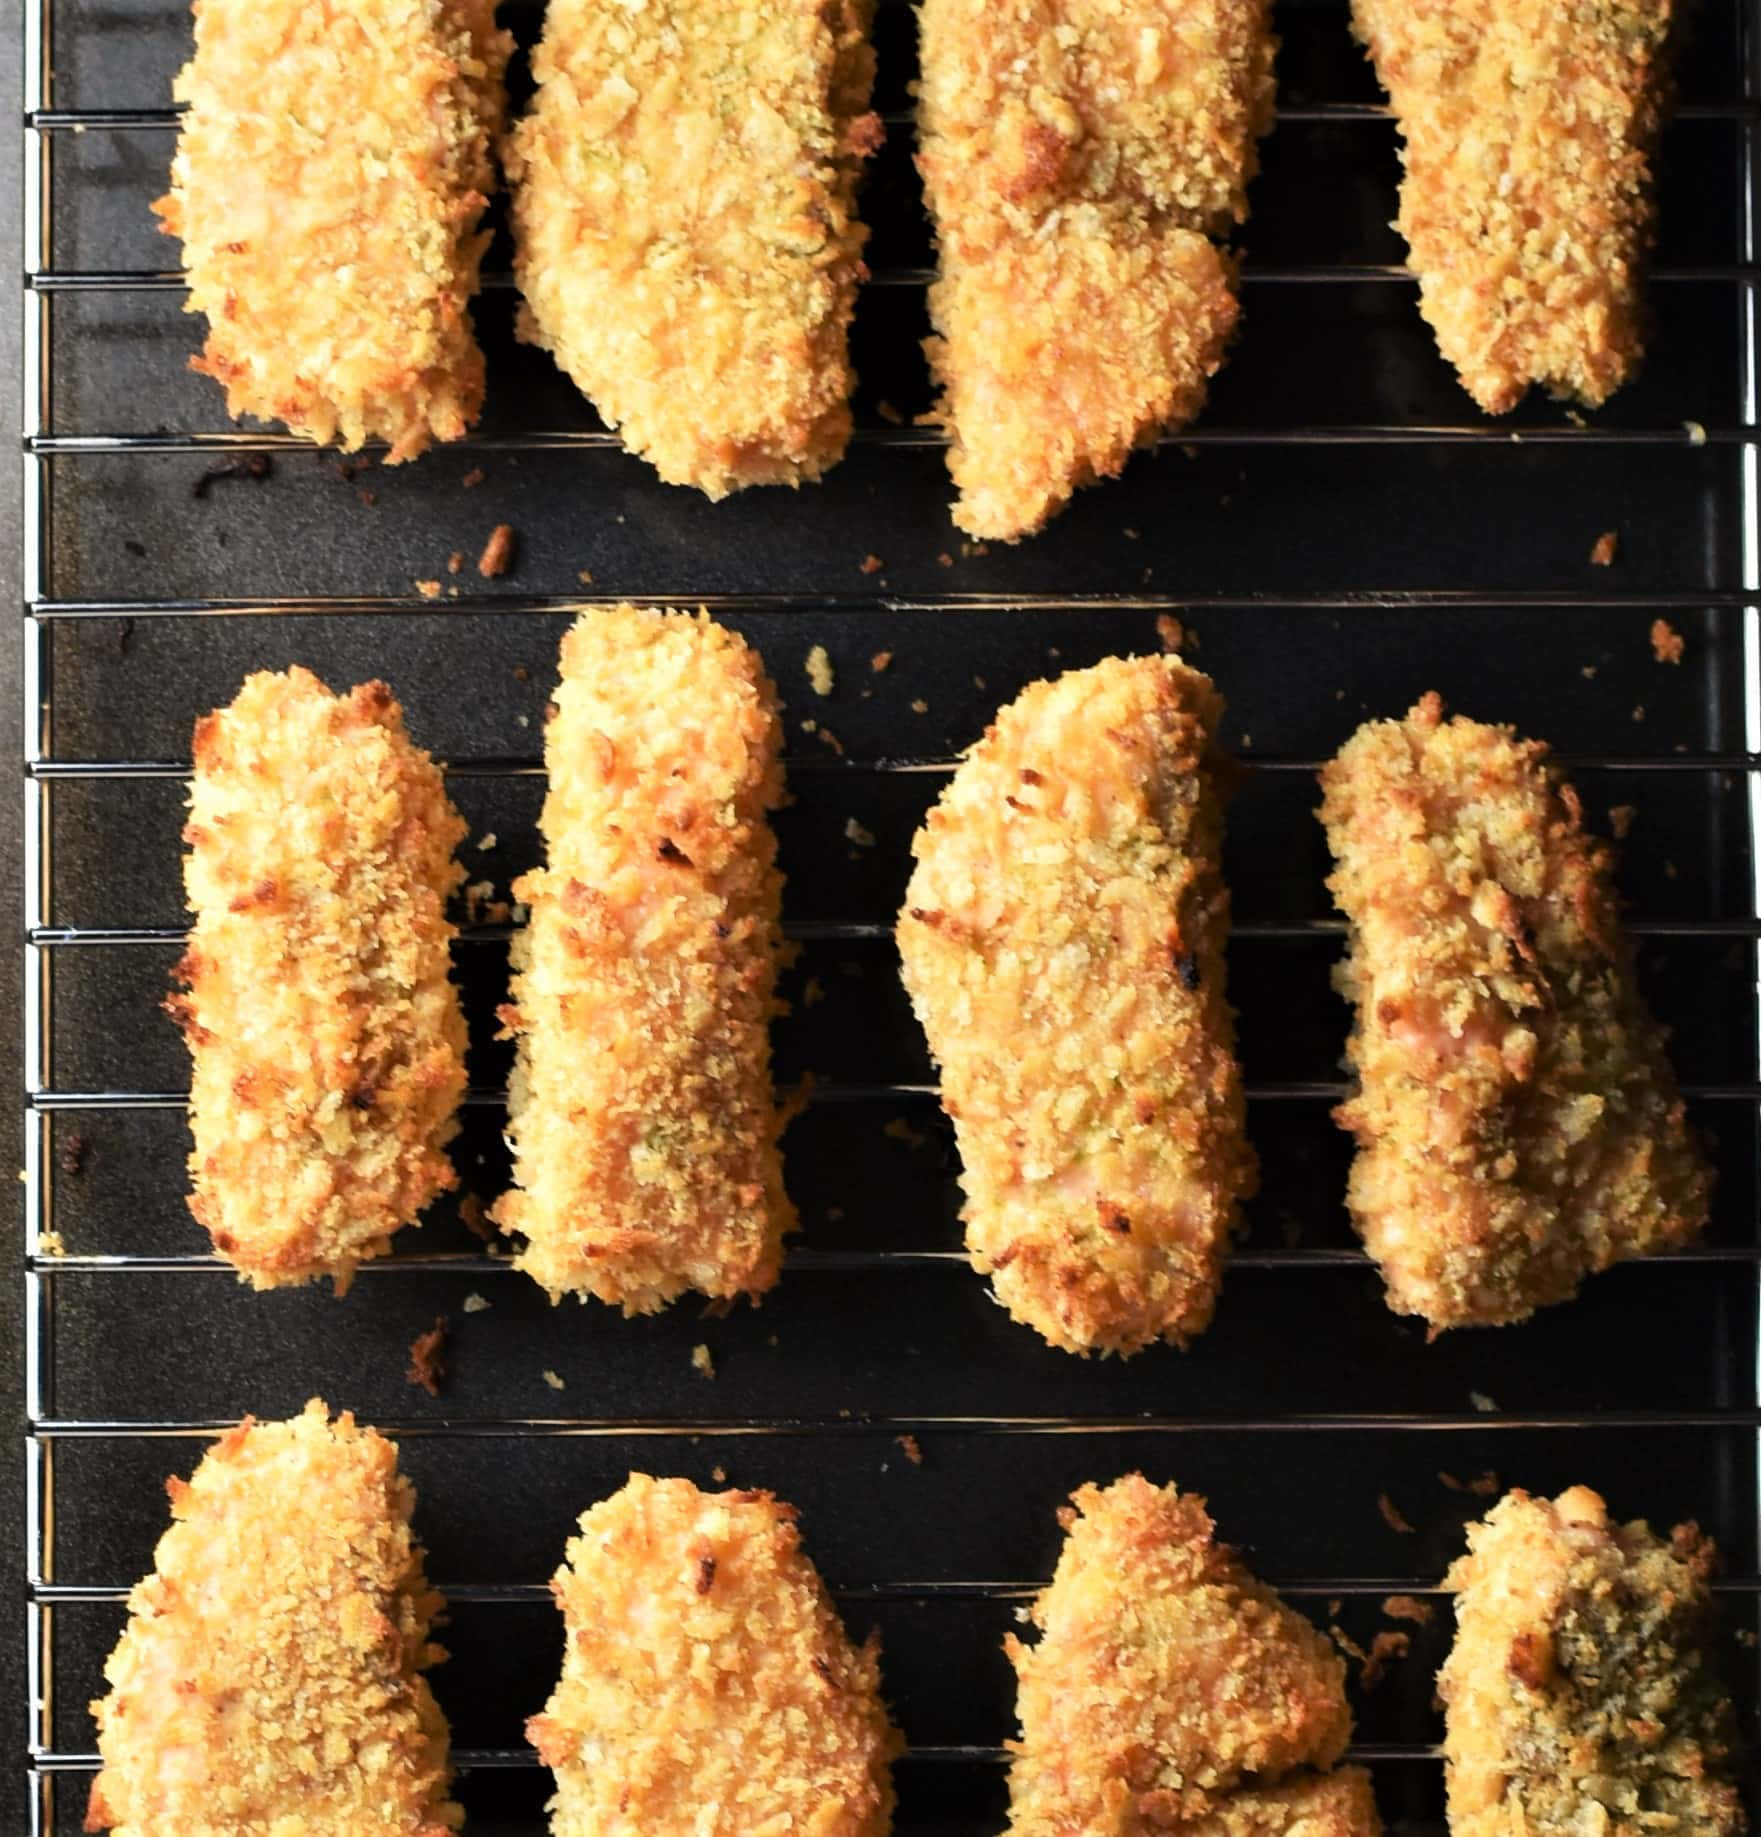 Crispy baked salmon fingers on top of rack.